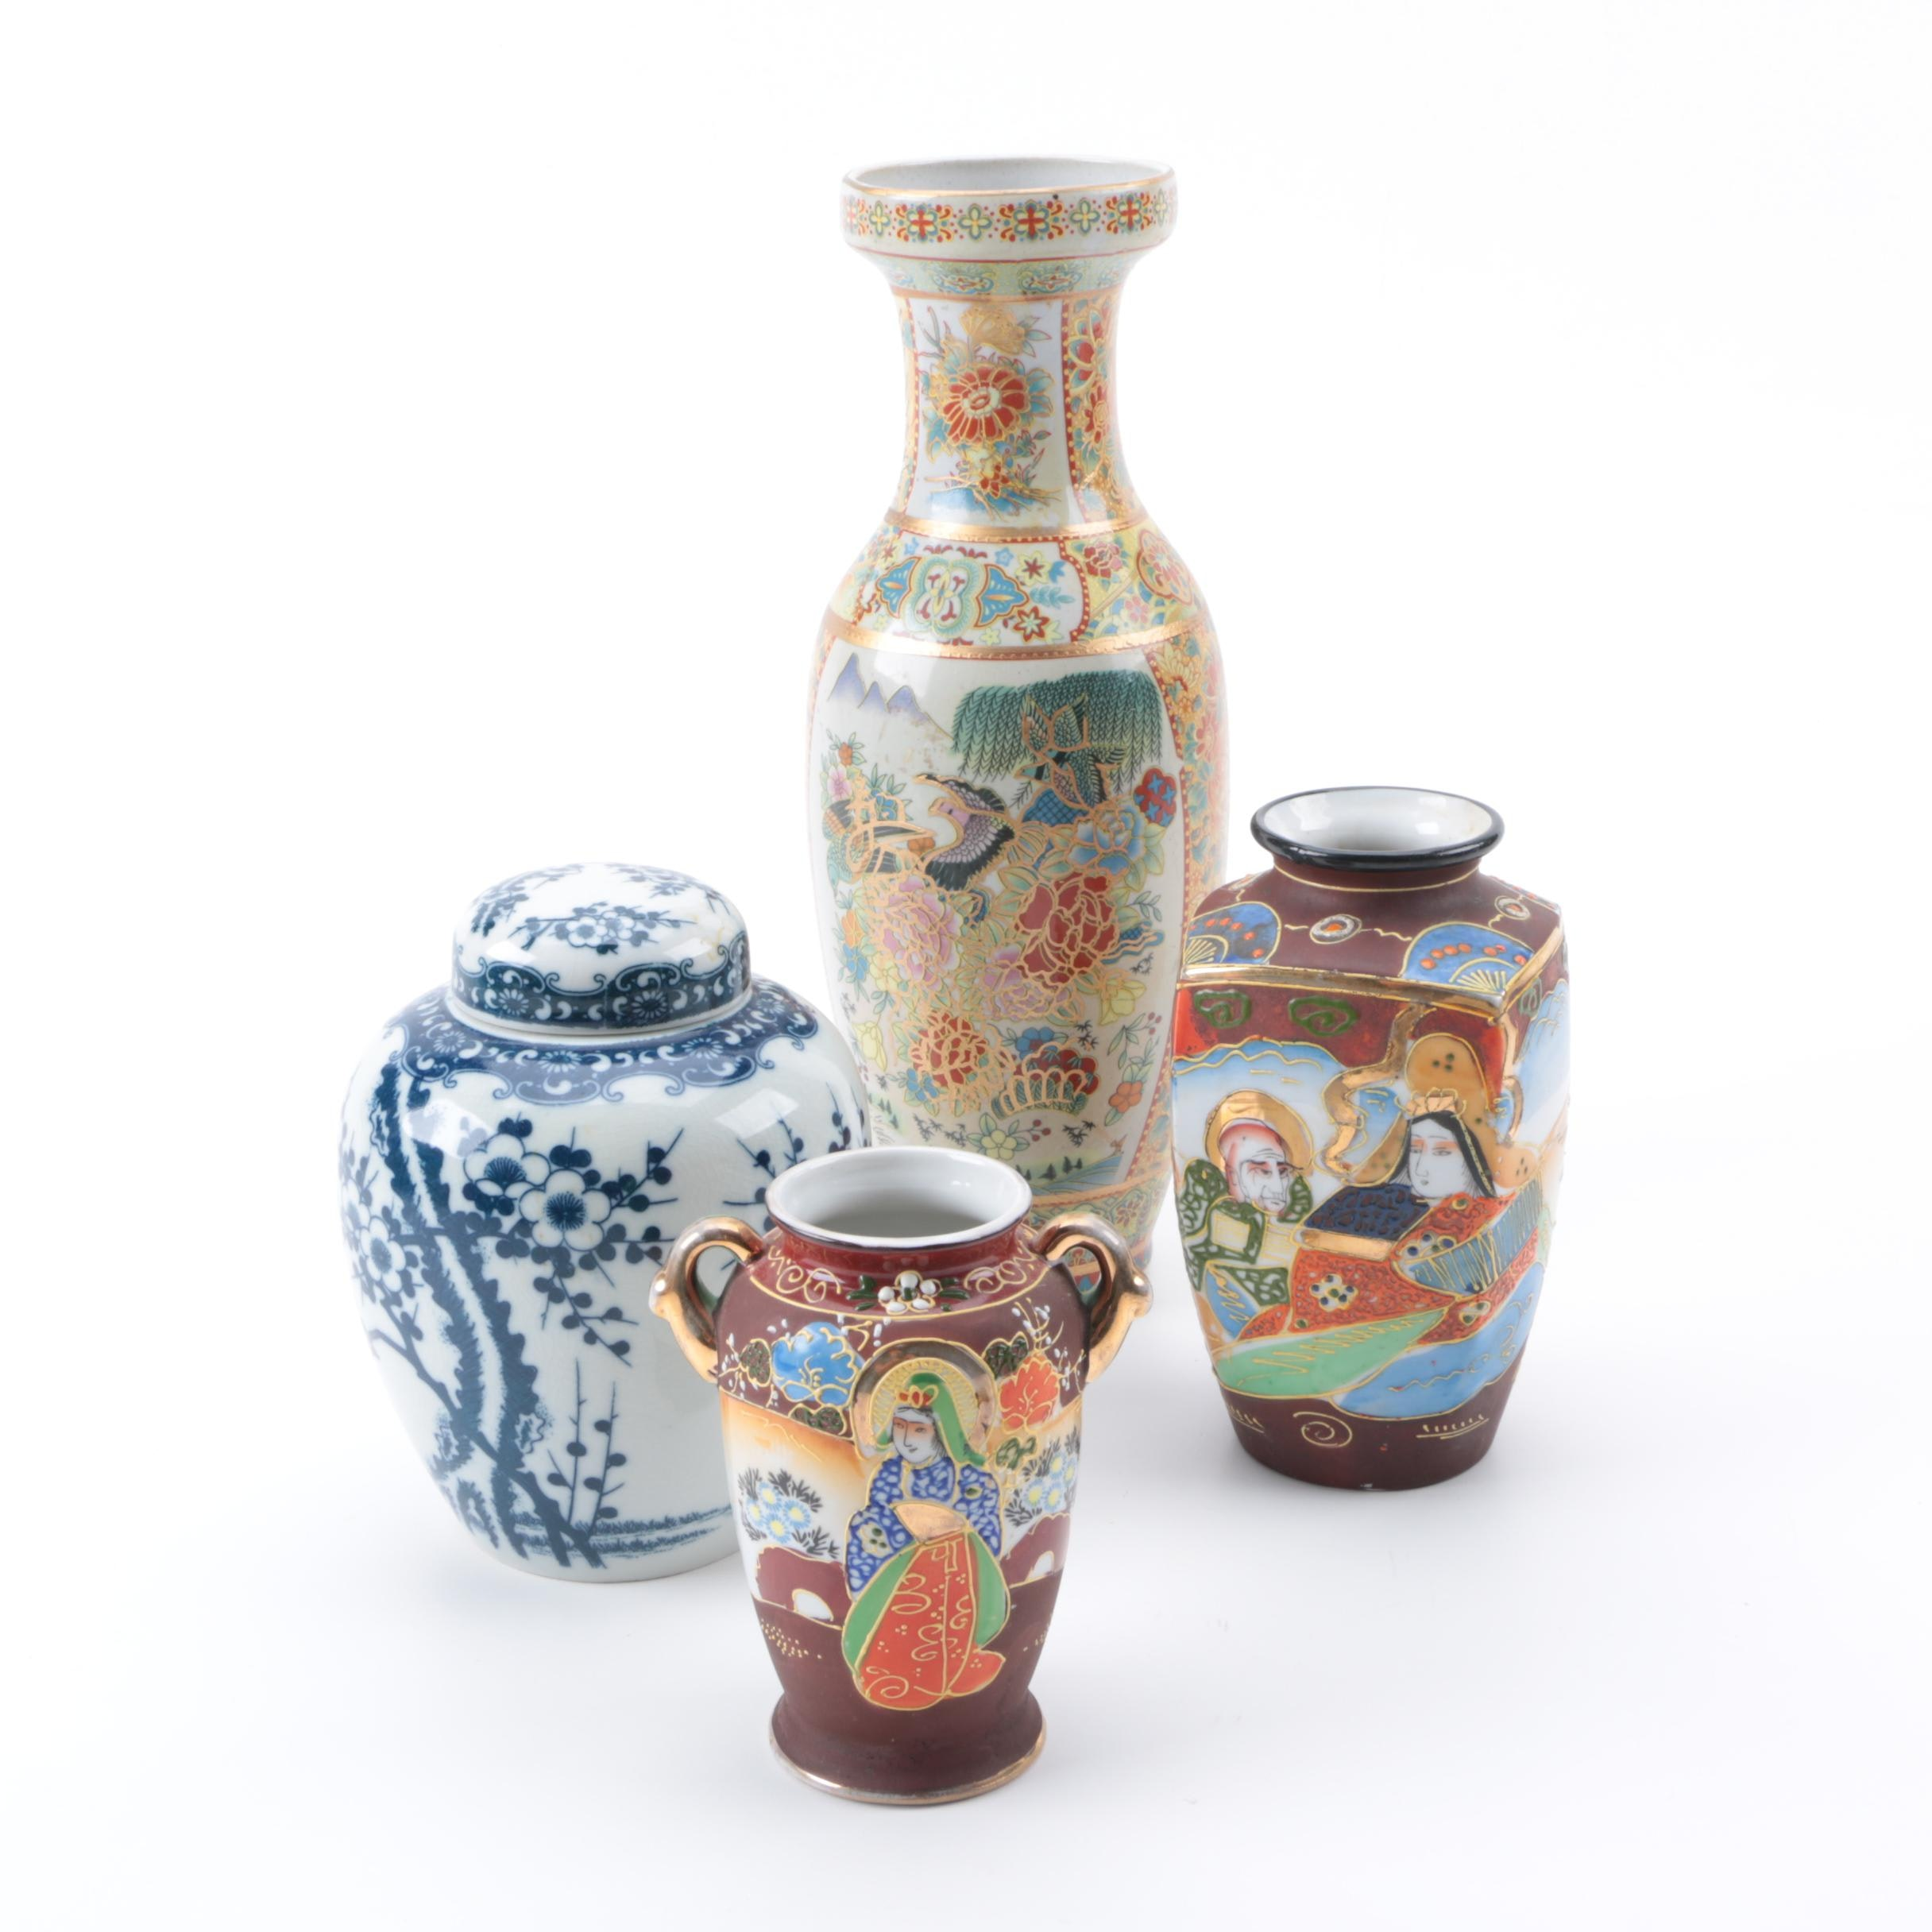 Assortment of Vintage East Asian Ceramic Vases and Urn